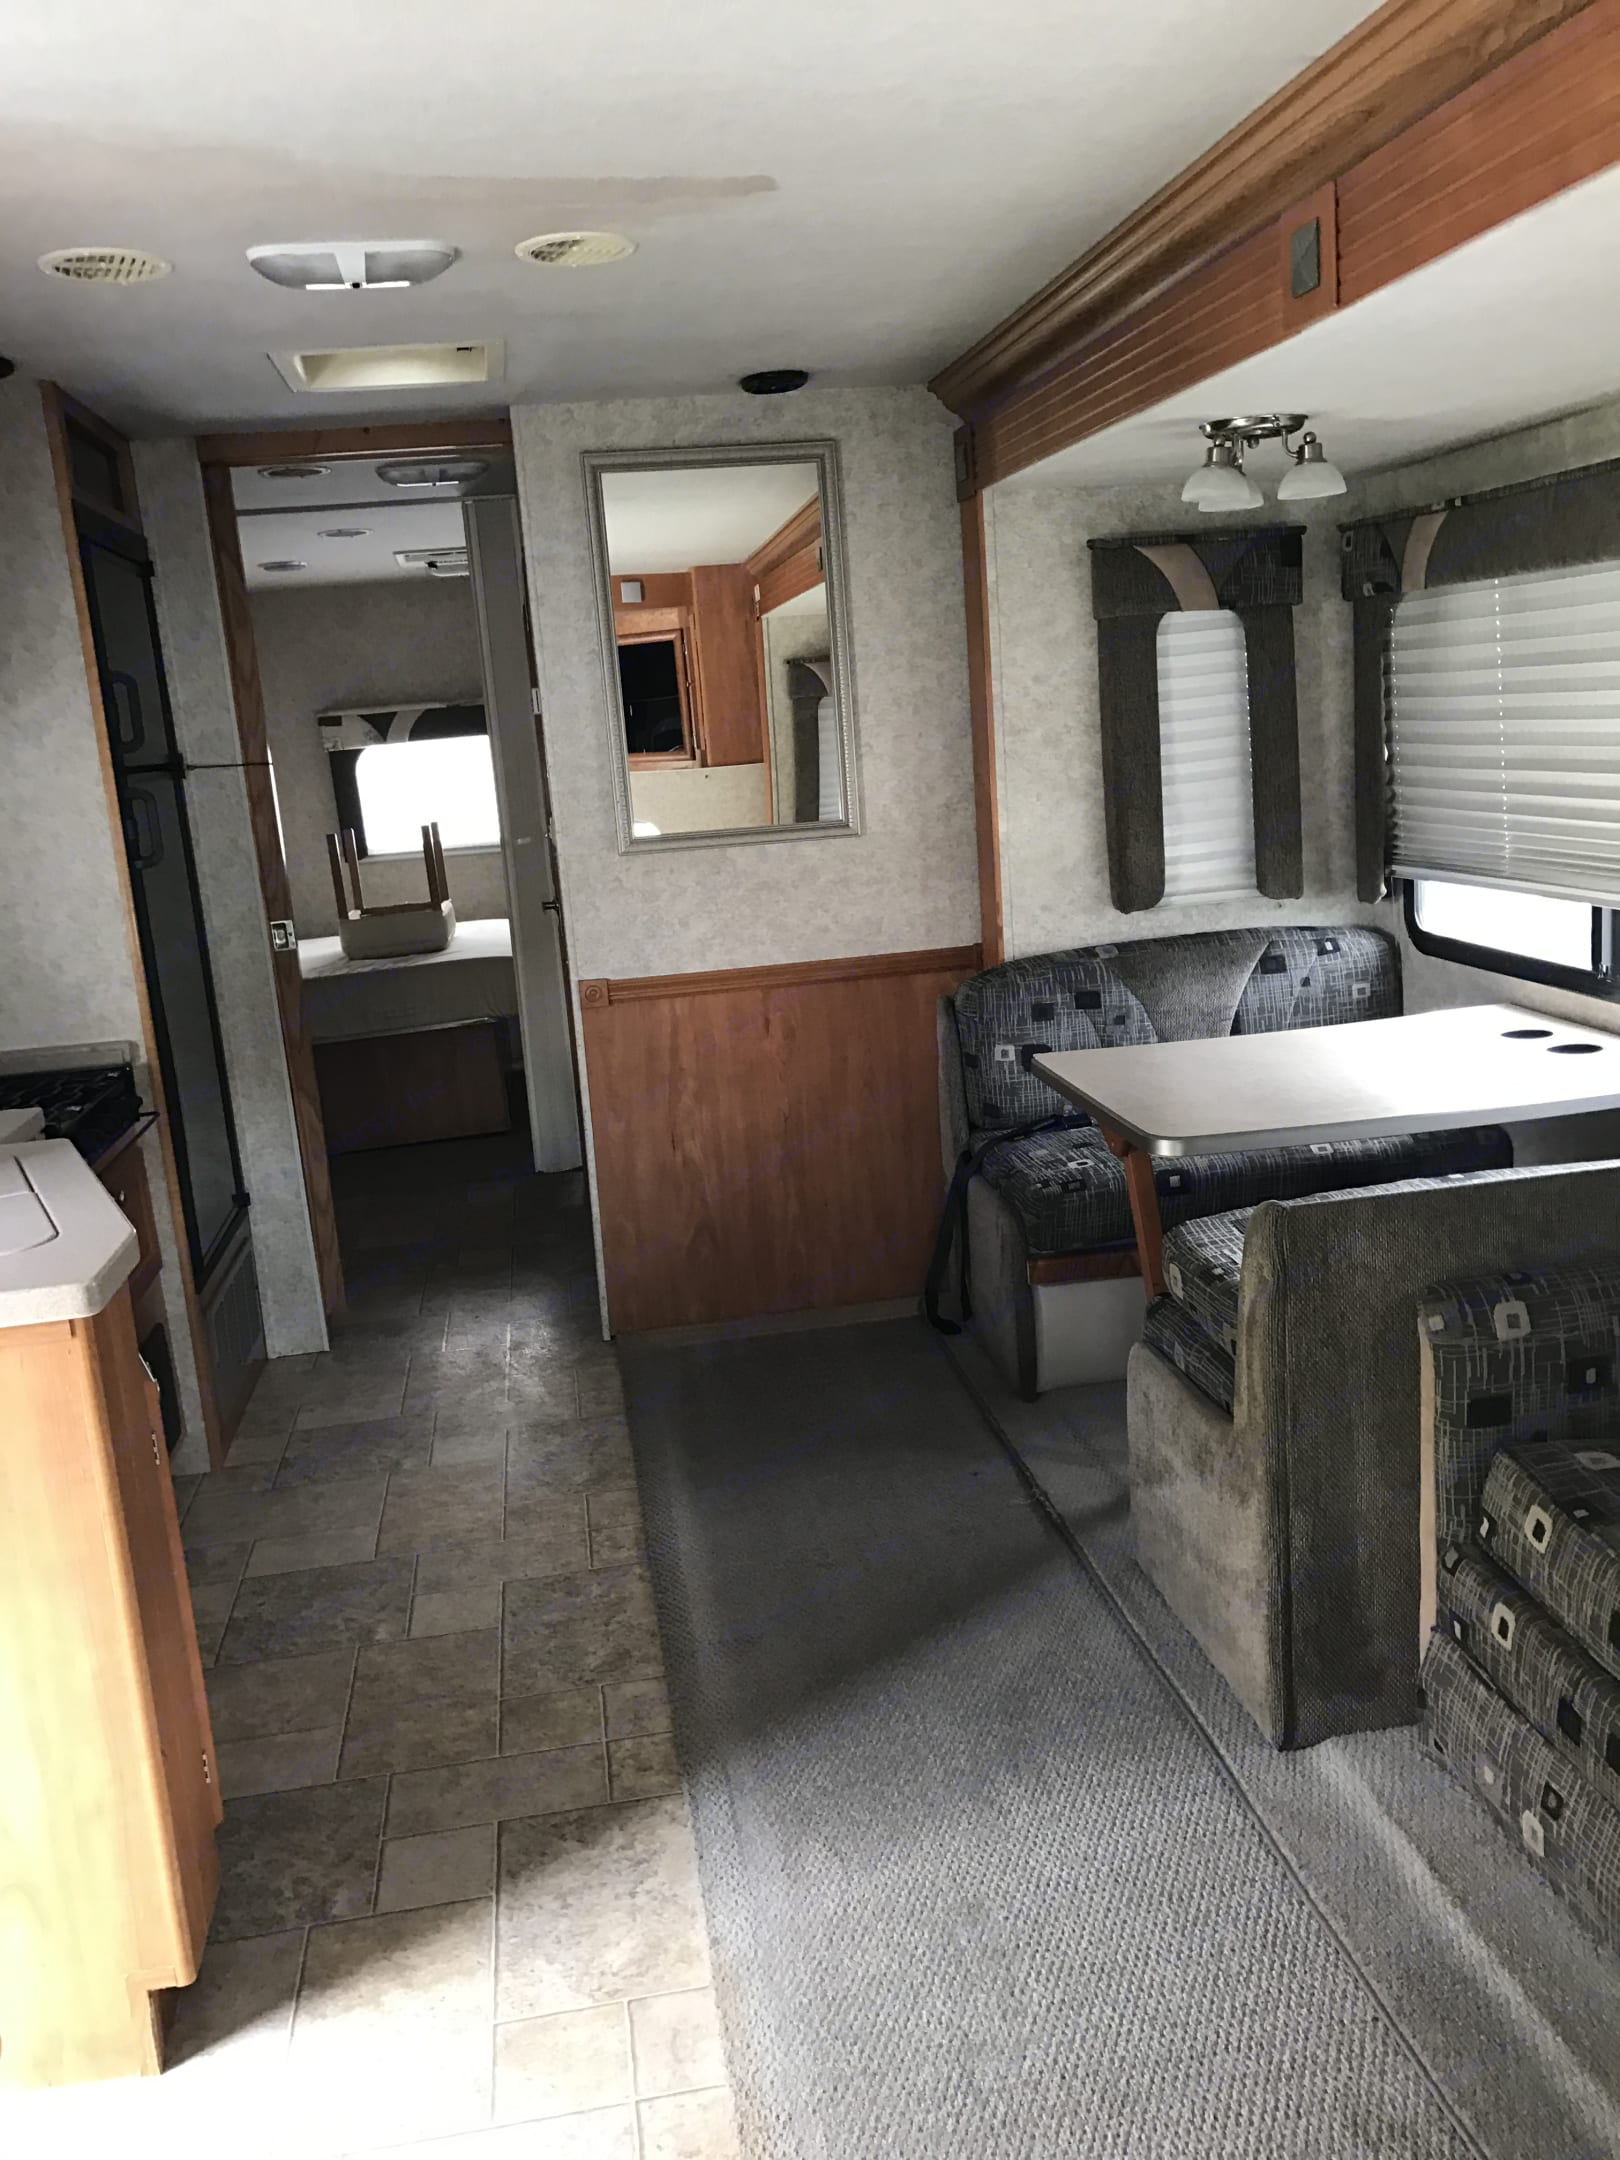 Dinette and hall at to bath and master. Gulf Stream Endura 2006